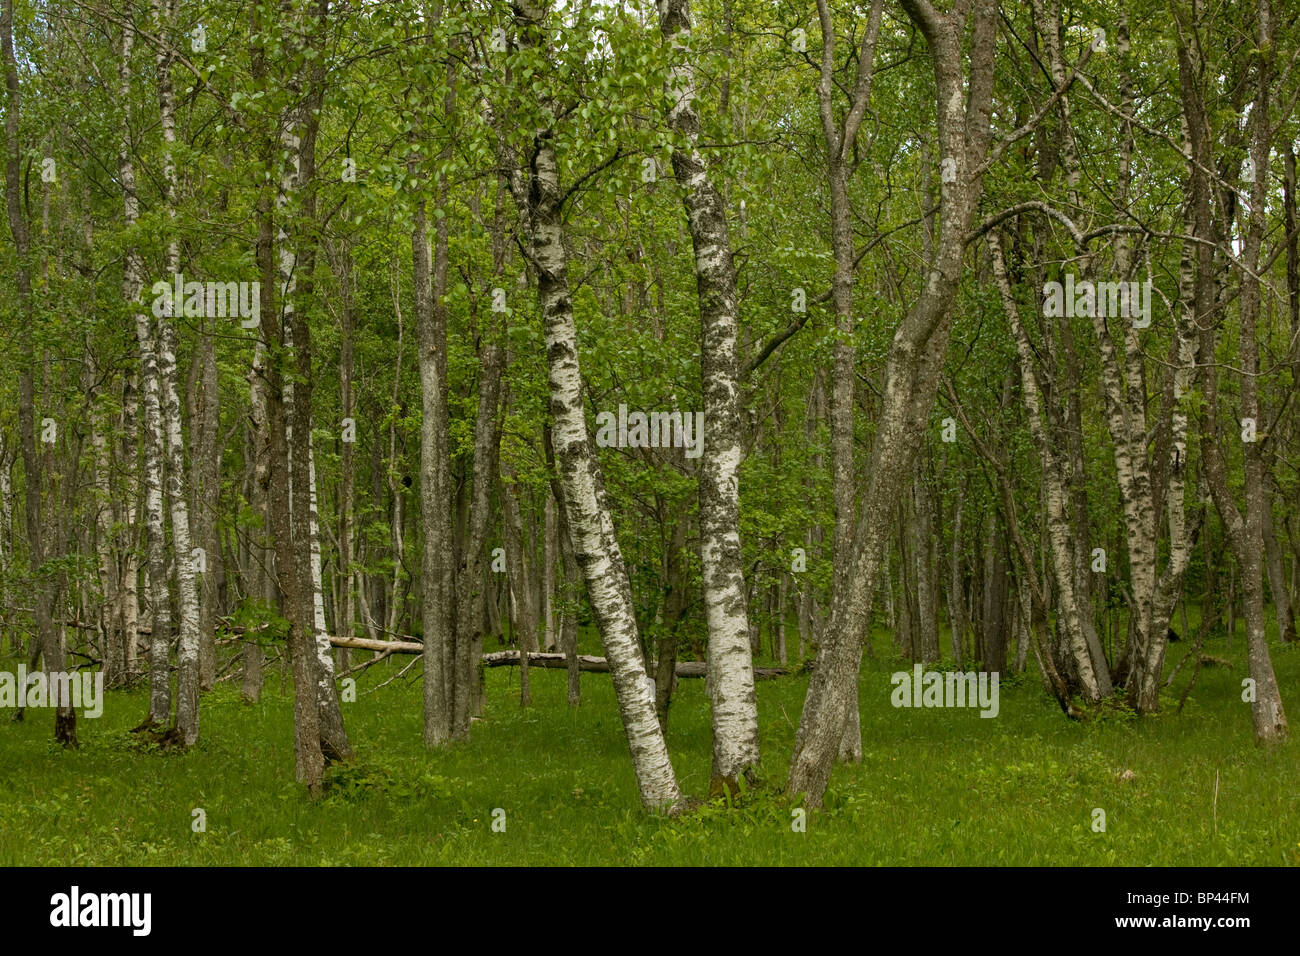 Downy Birch trunks in Laelatu Wooded Meadow, Puhtu-Laelatu Reserve; West coast of Estonia - Stock Image